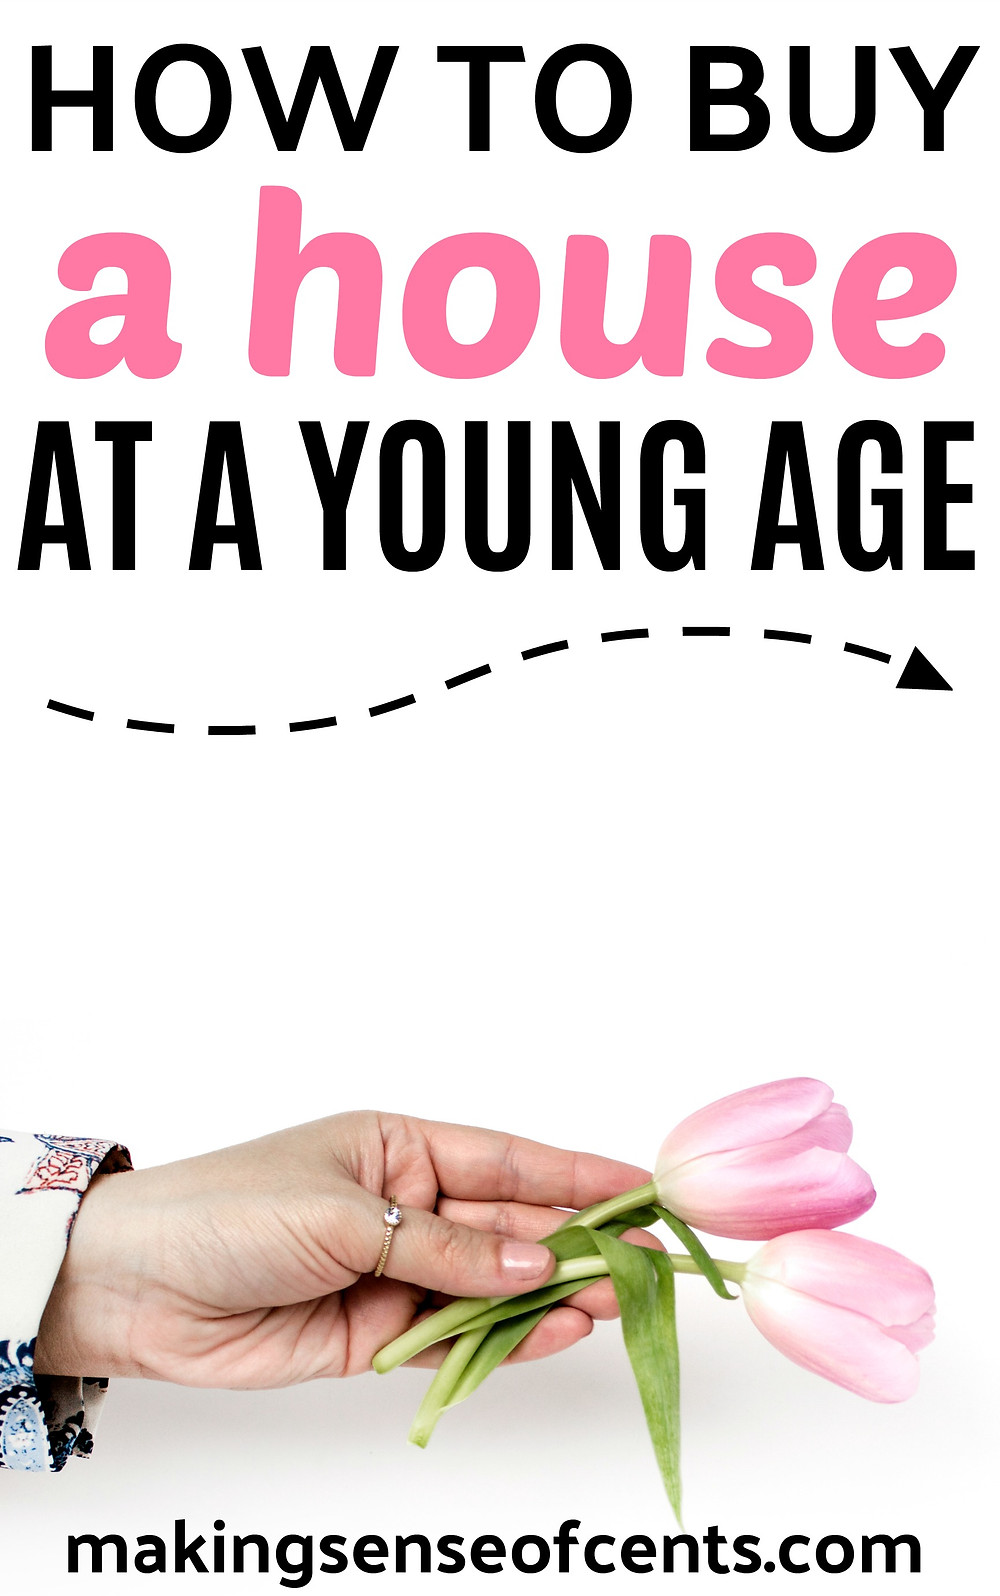 Find out how to buy a house at a young age. This is a great list!